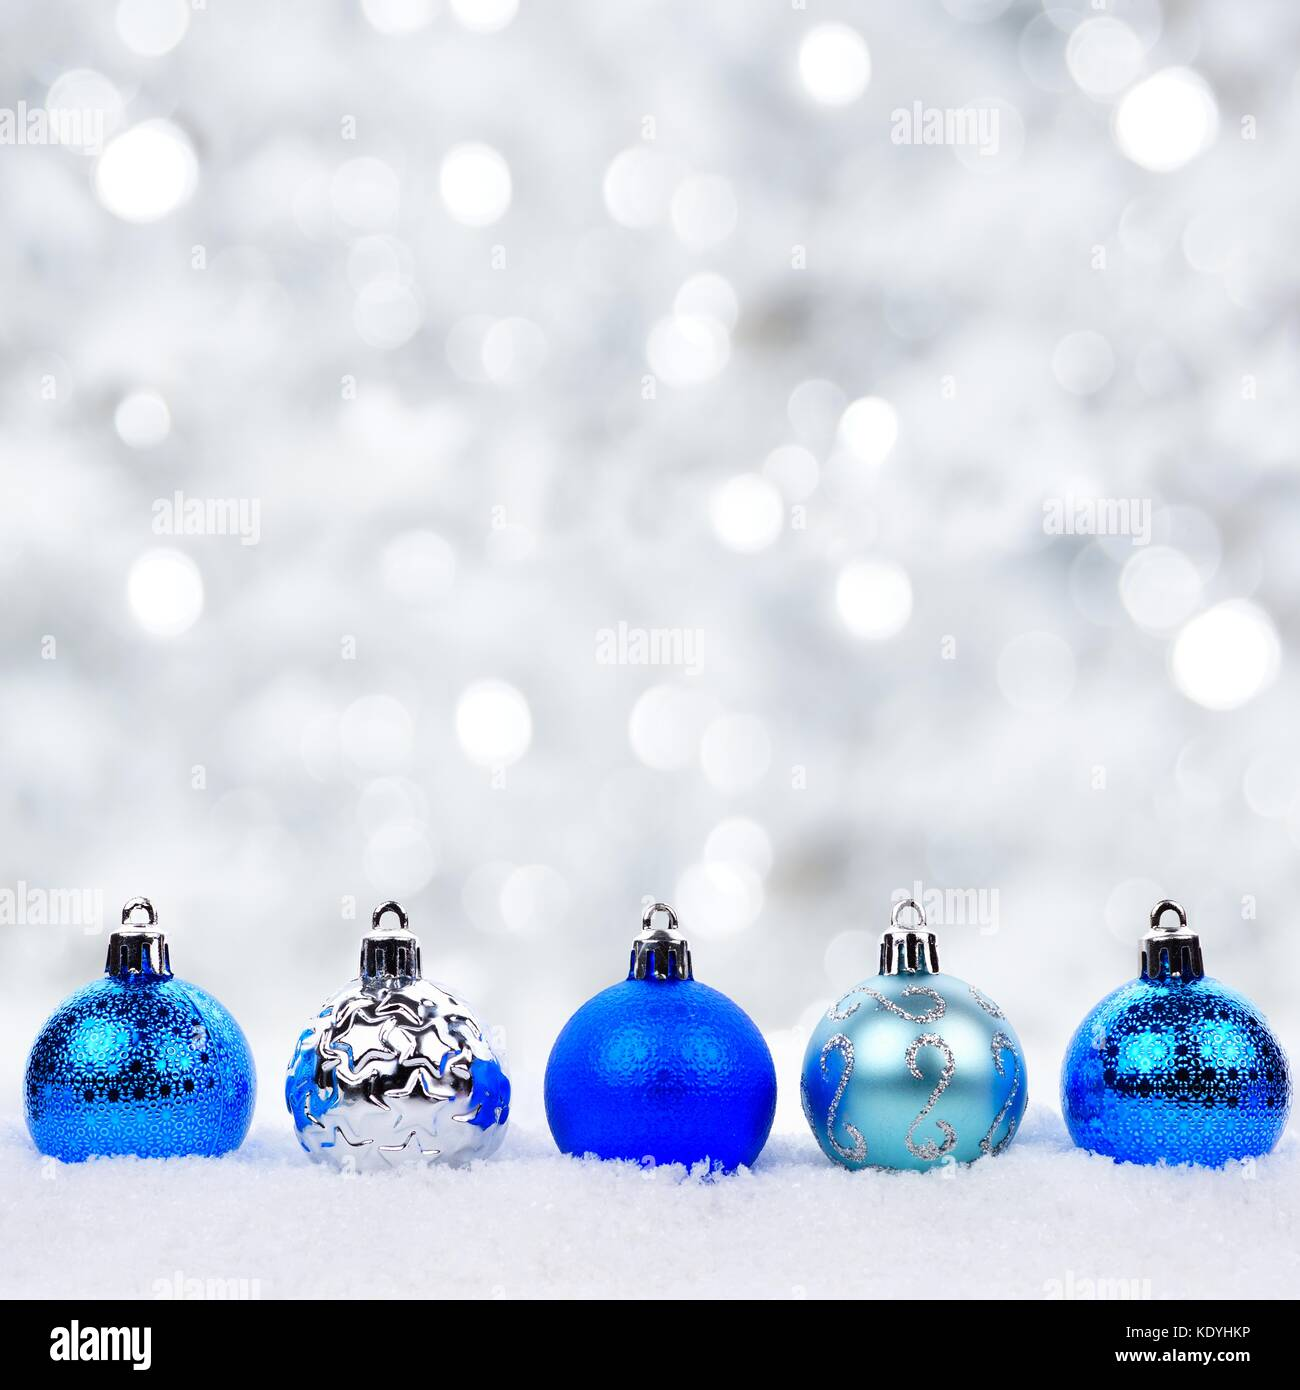 Shiny Bright Christmas Ornaments